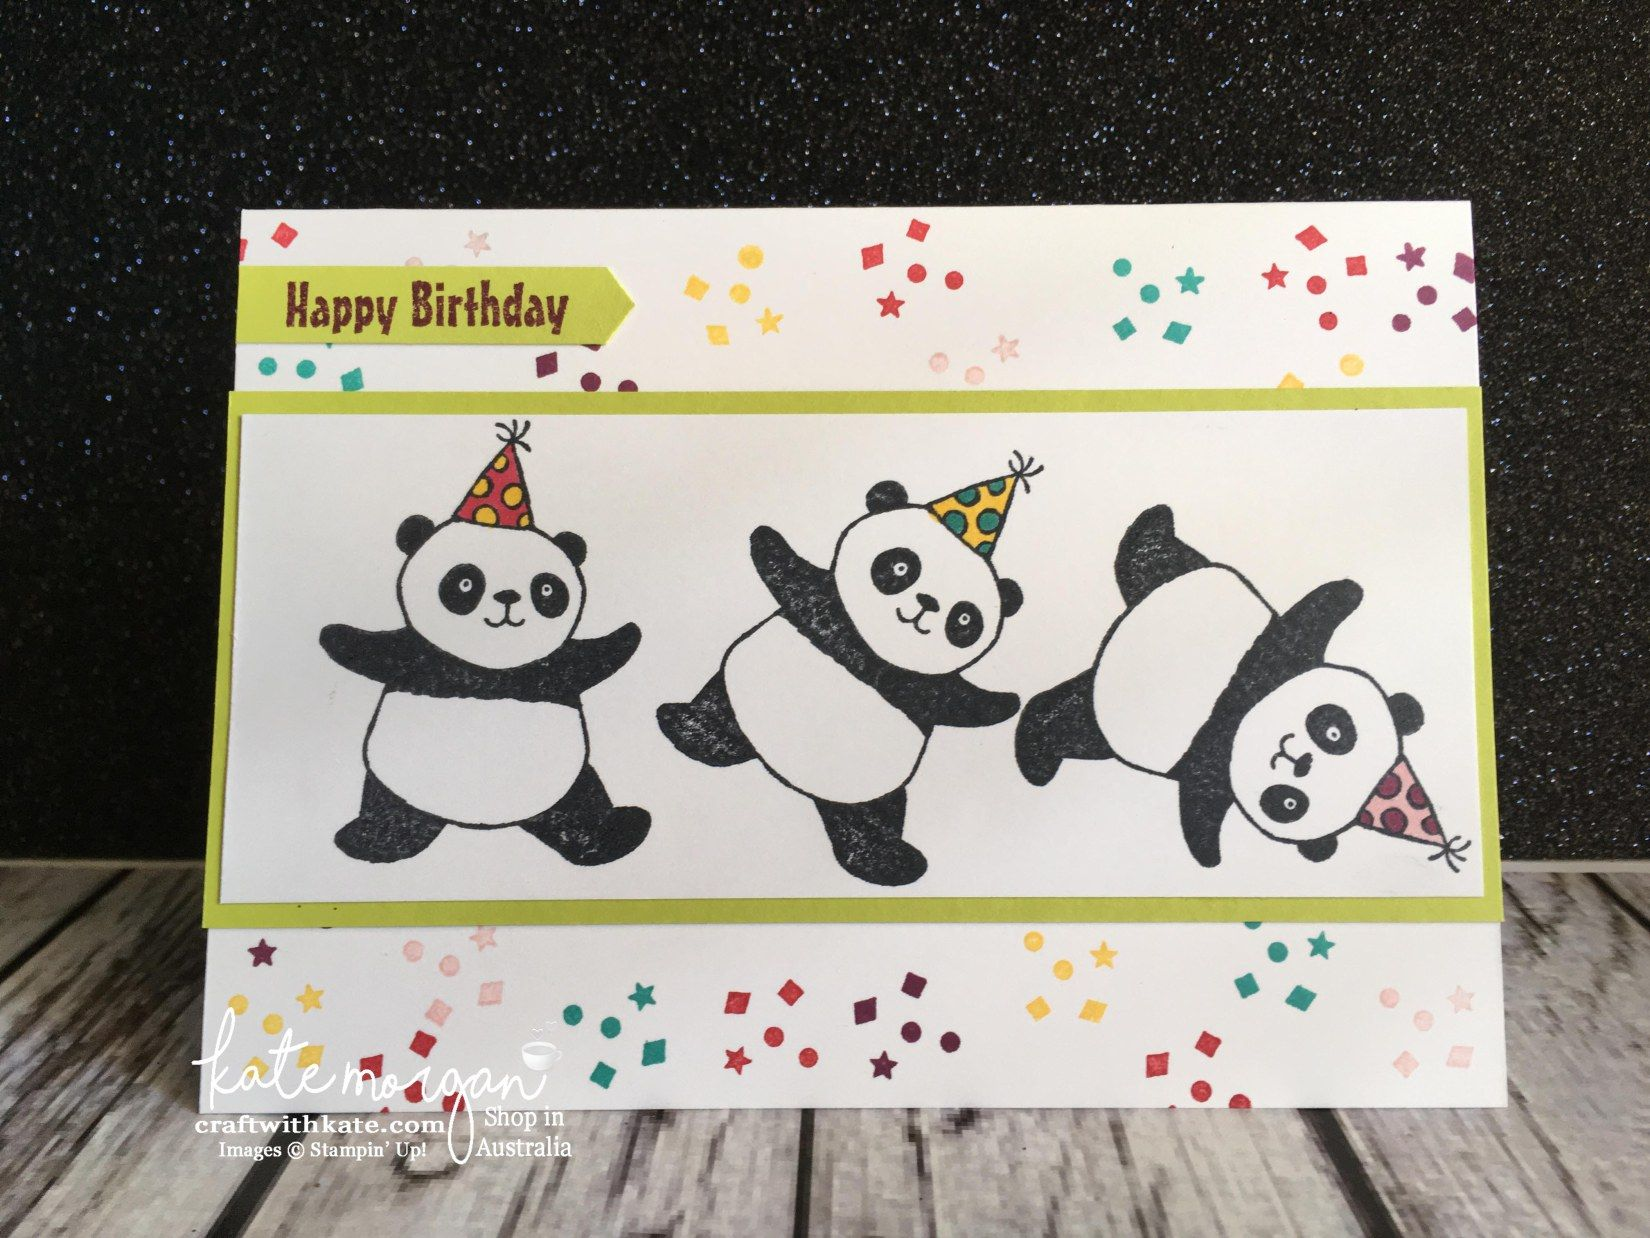 Sneak Peek Of Party Pandas Panda Australia And Kids Birthday Cards